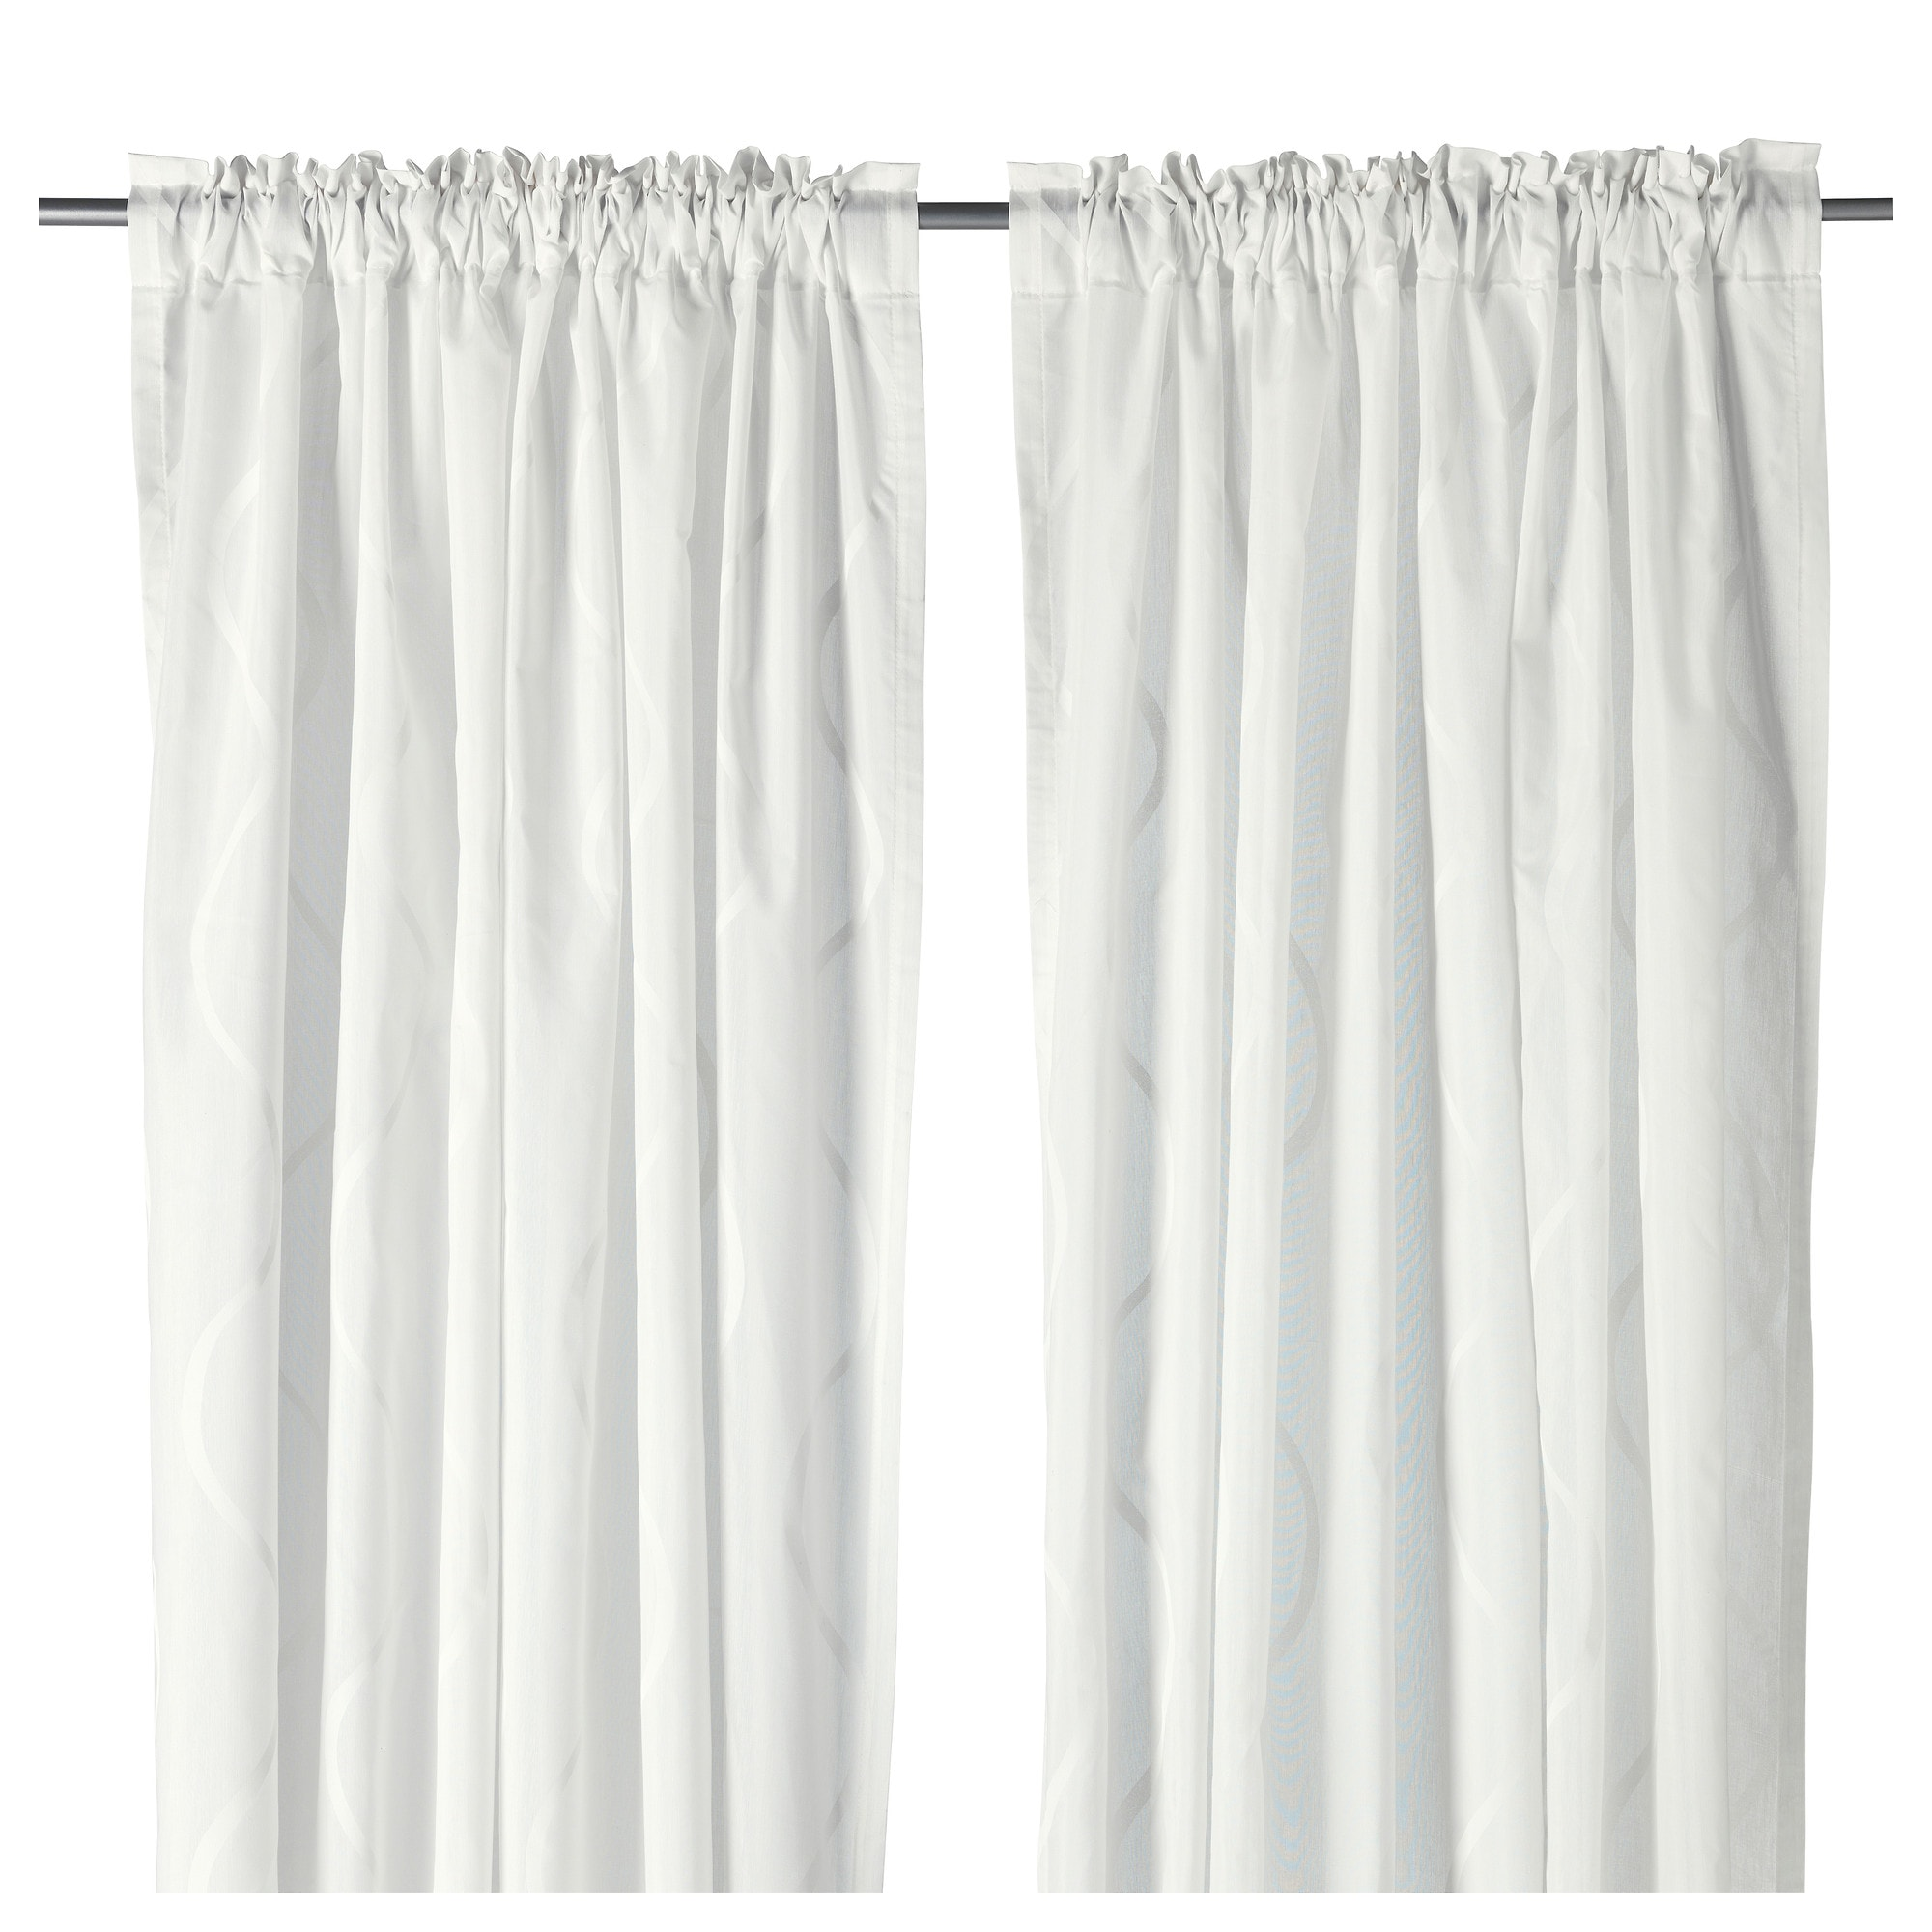 HILLMARI Curtains, 1 Pair   IKEA